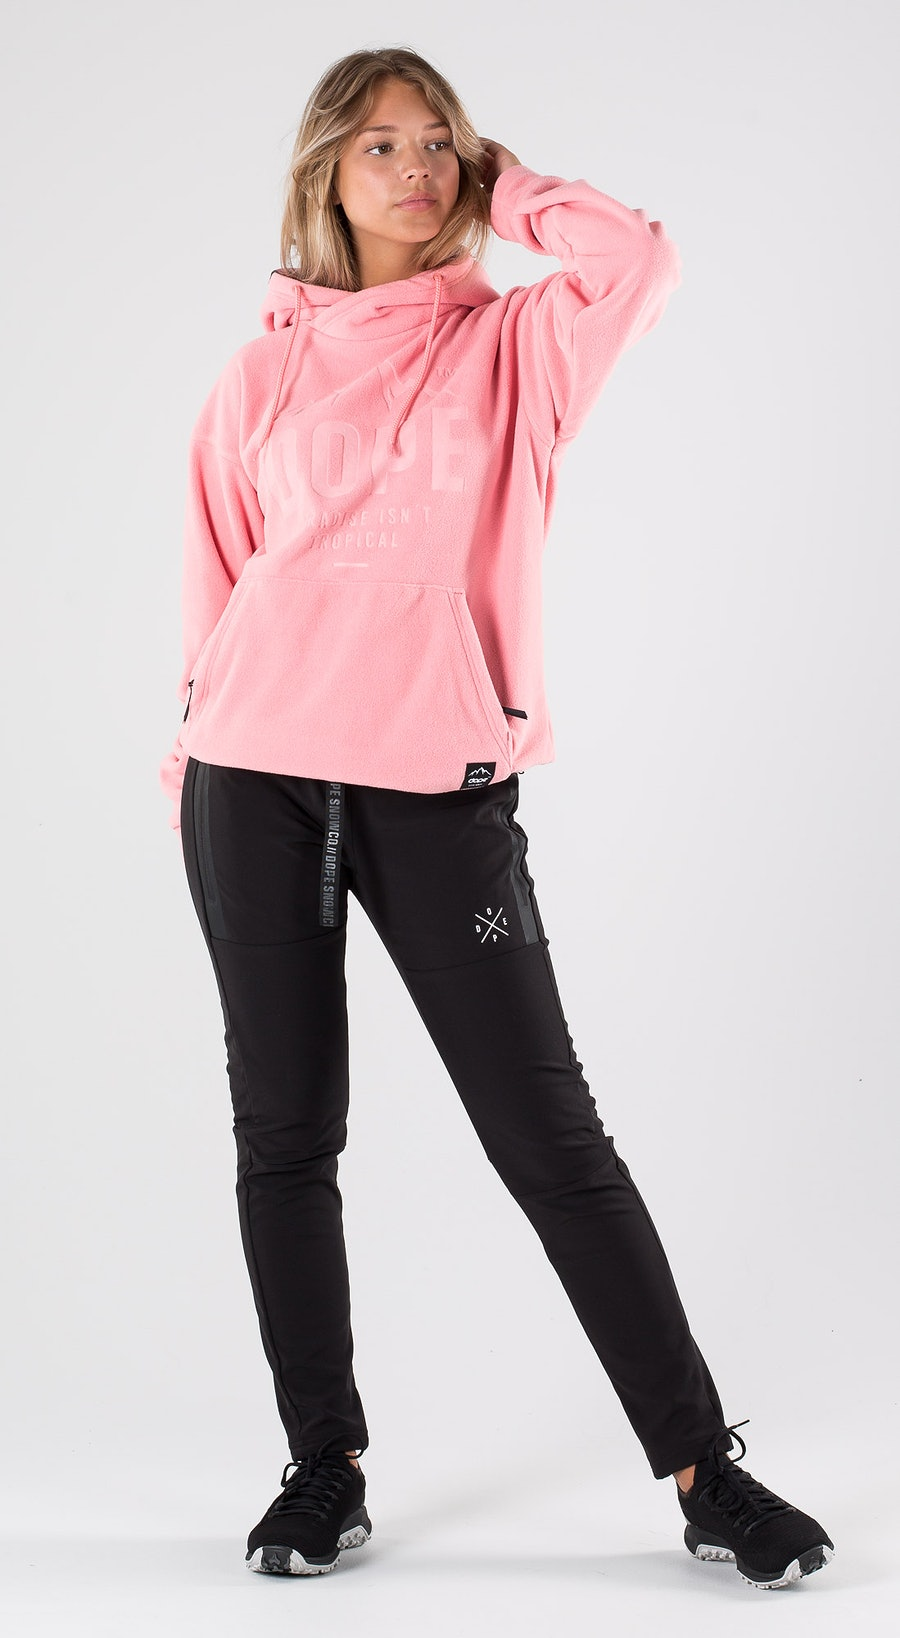 Dope Cozy Pink Outfit Multi